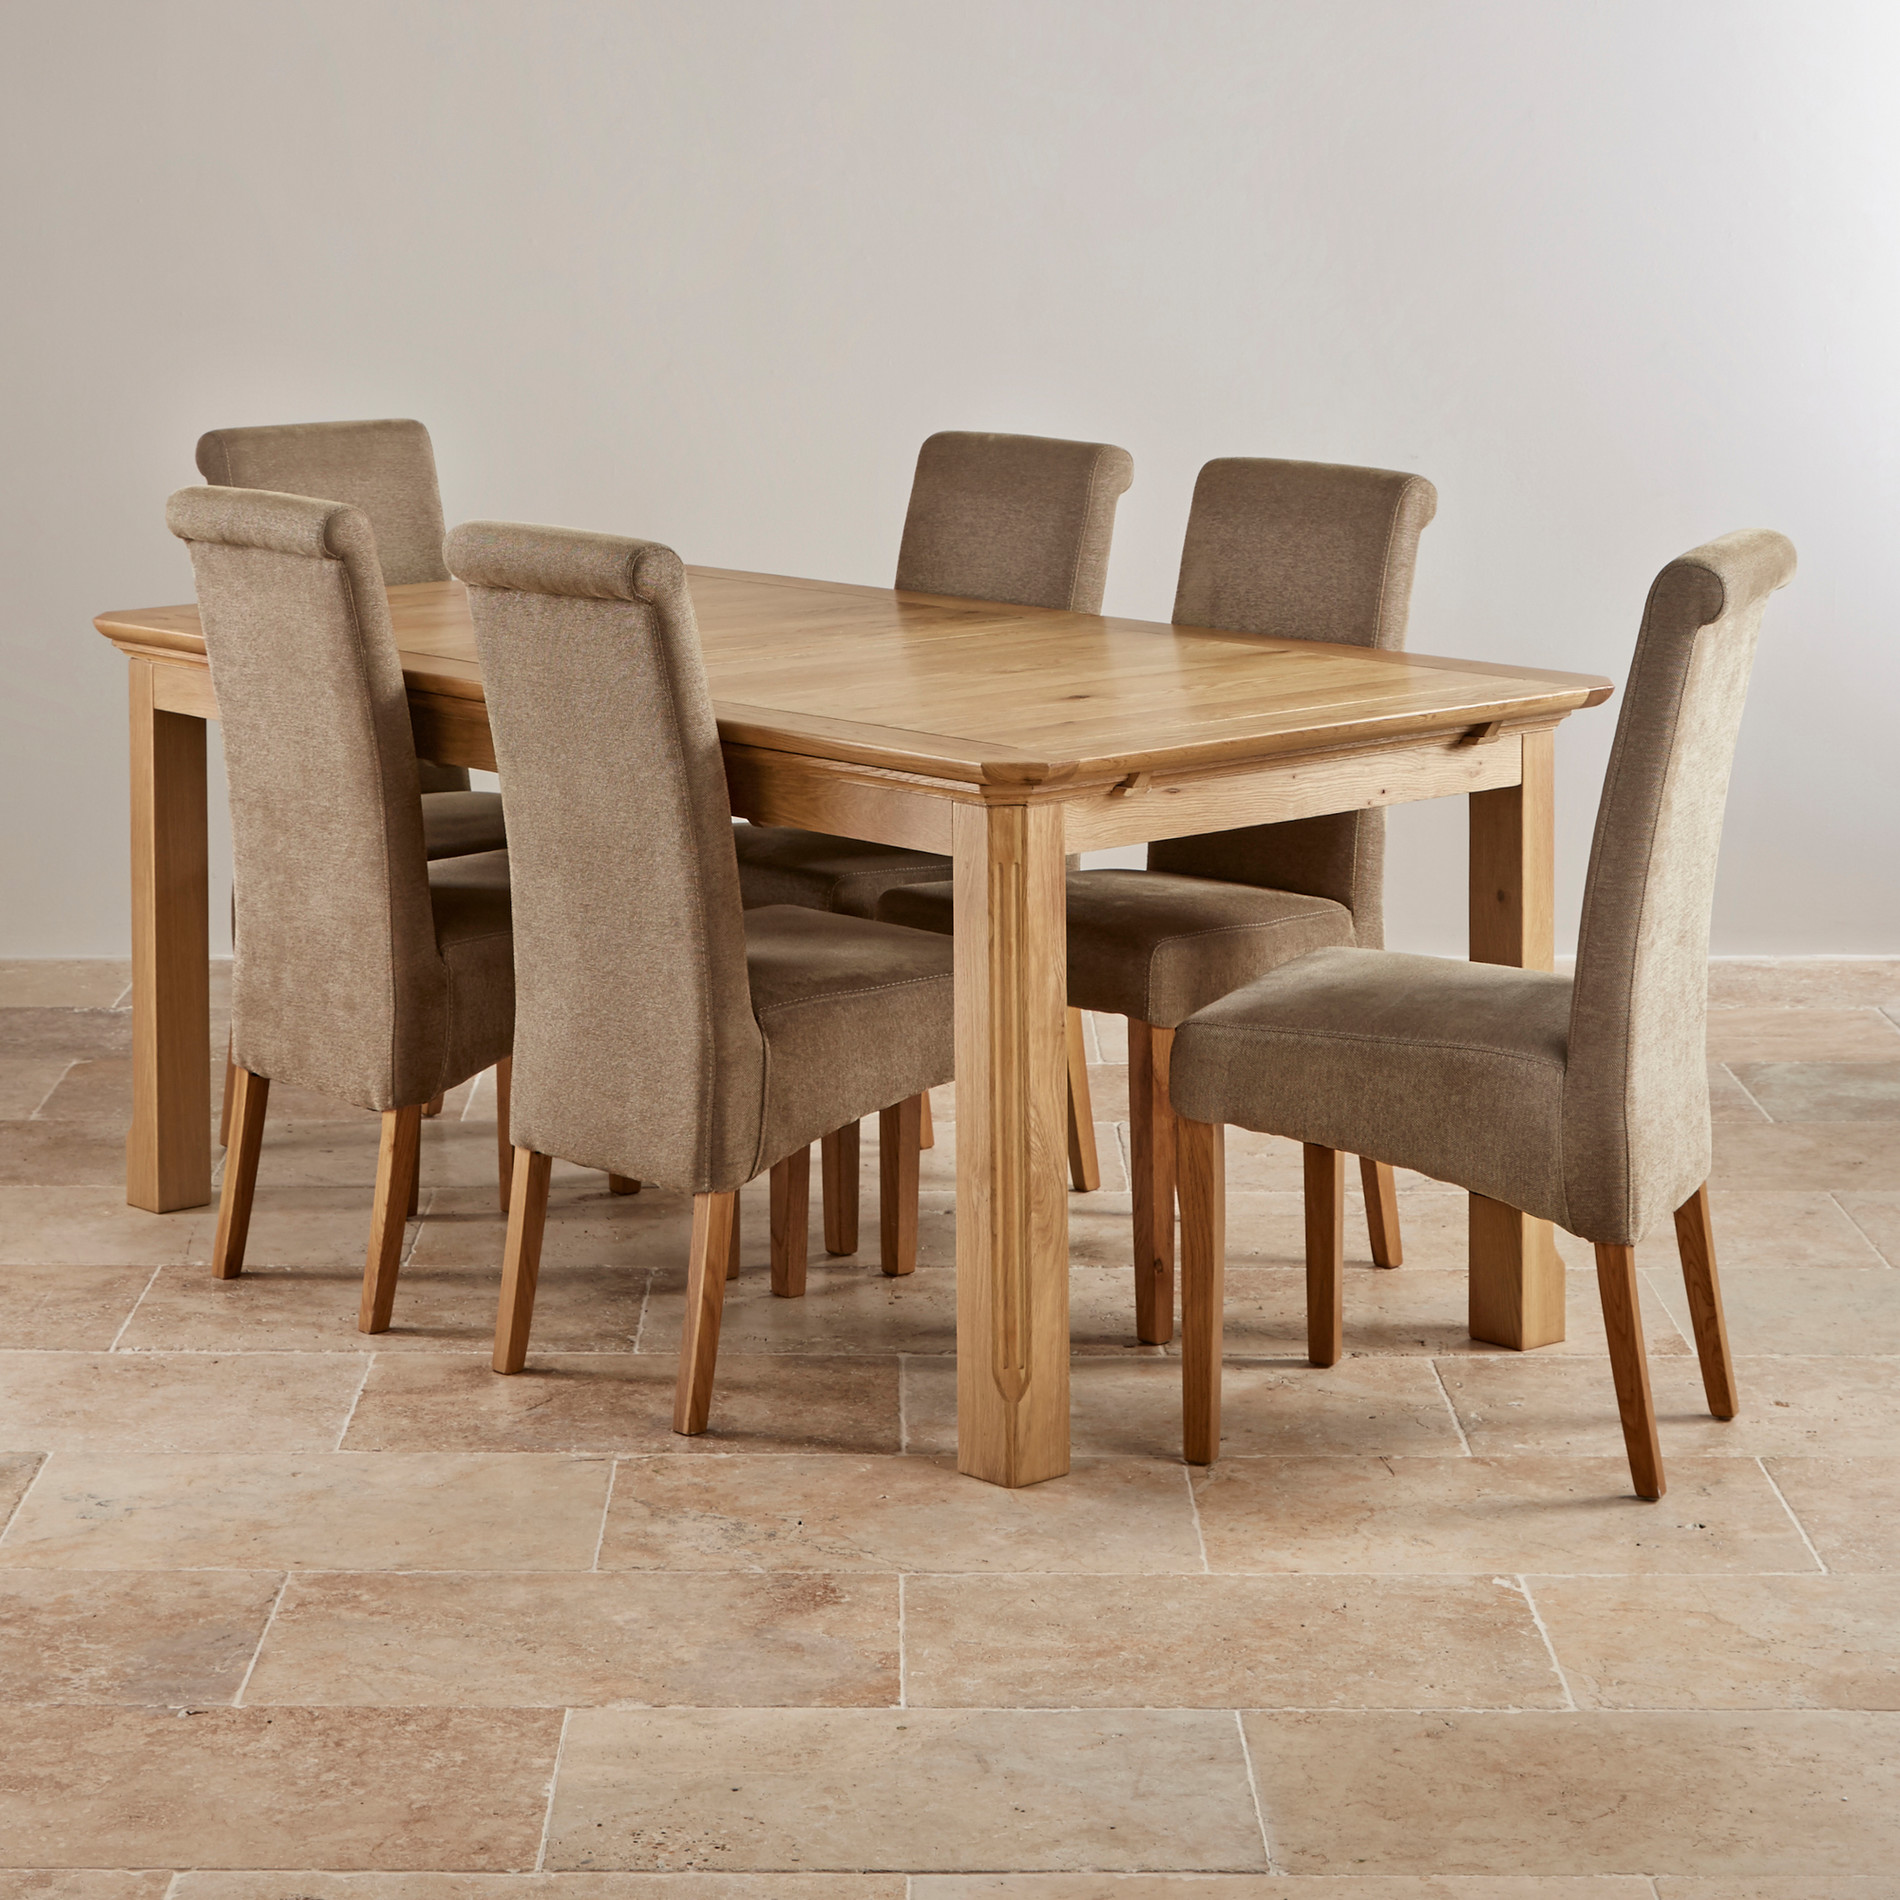 Solid Oak Dining Chairs: Edinburgh 6ft Extending Oak Dining Table + 6 Plain Sage Chairs